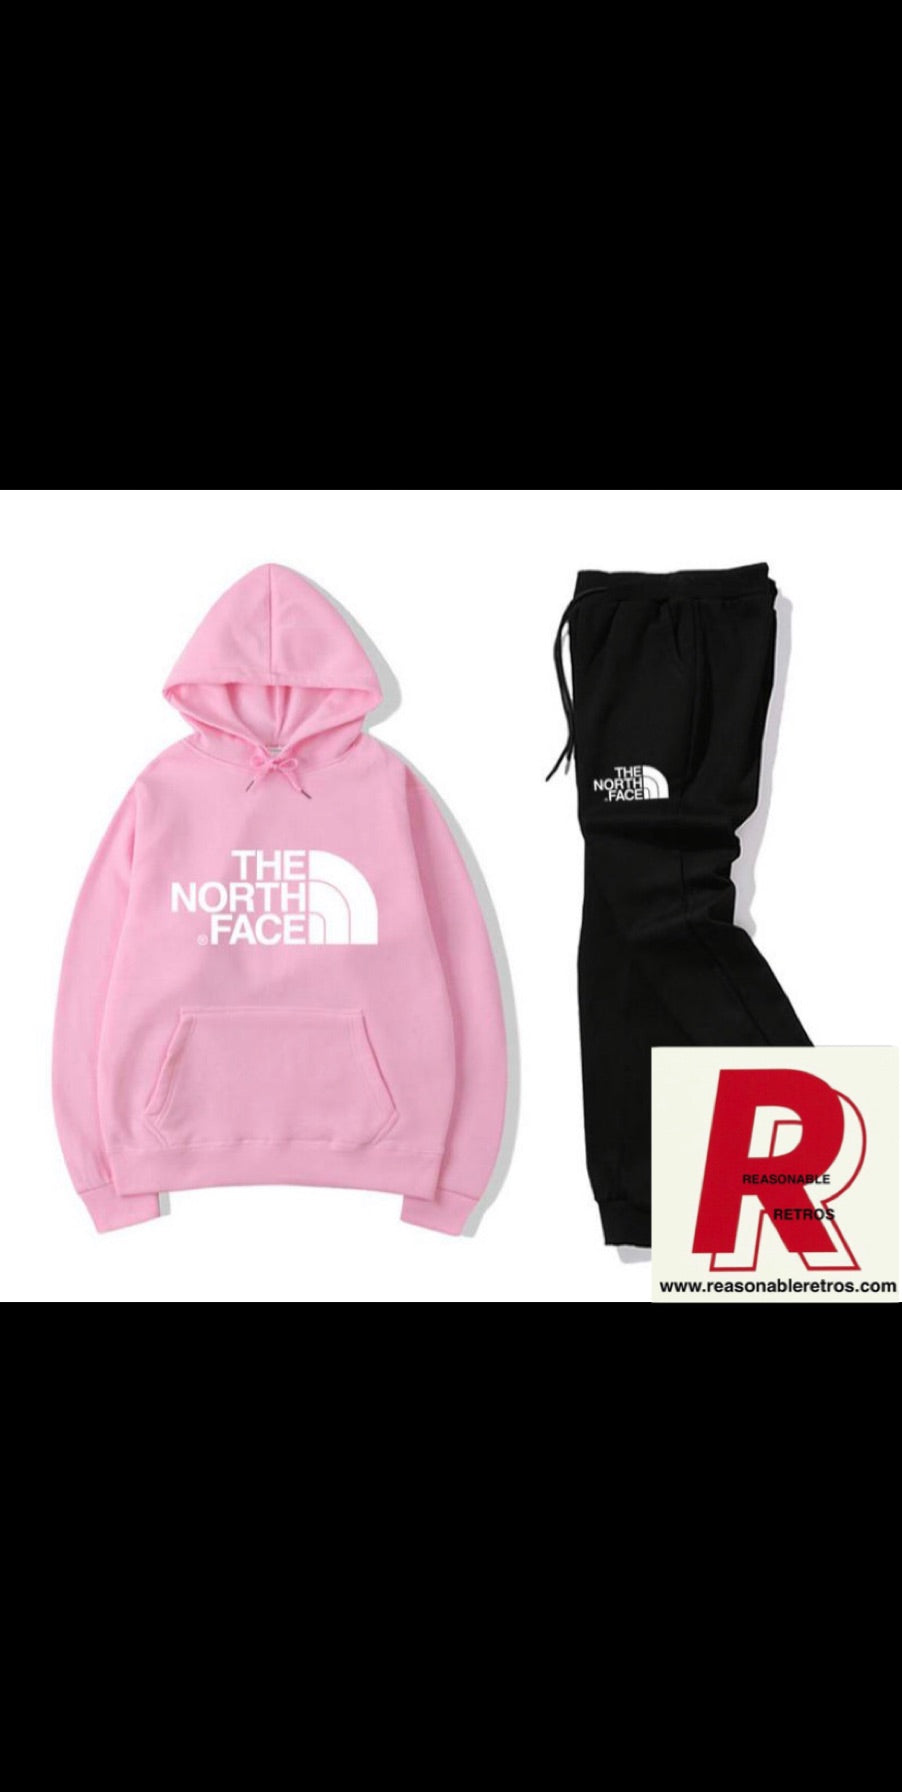 North Face Sweats Suit